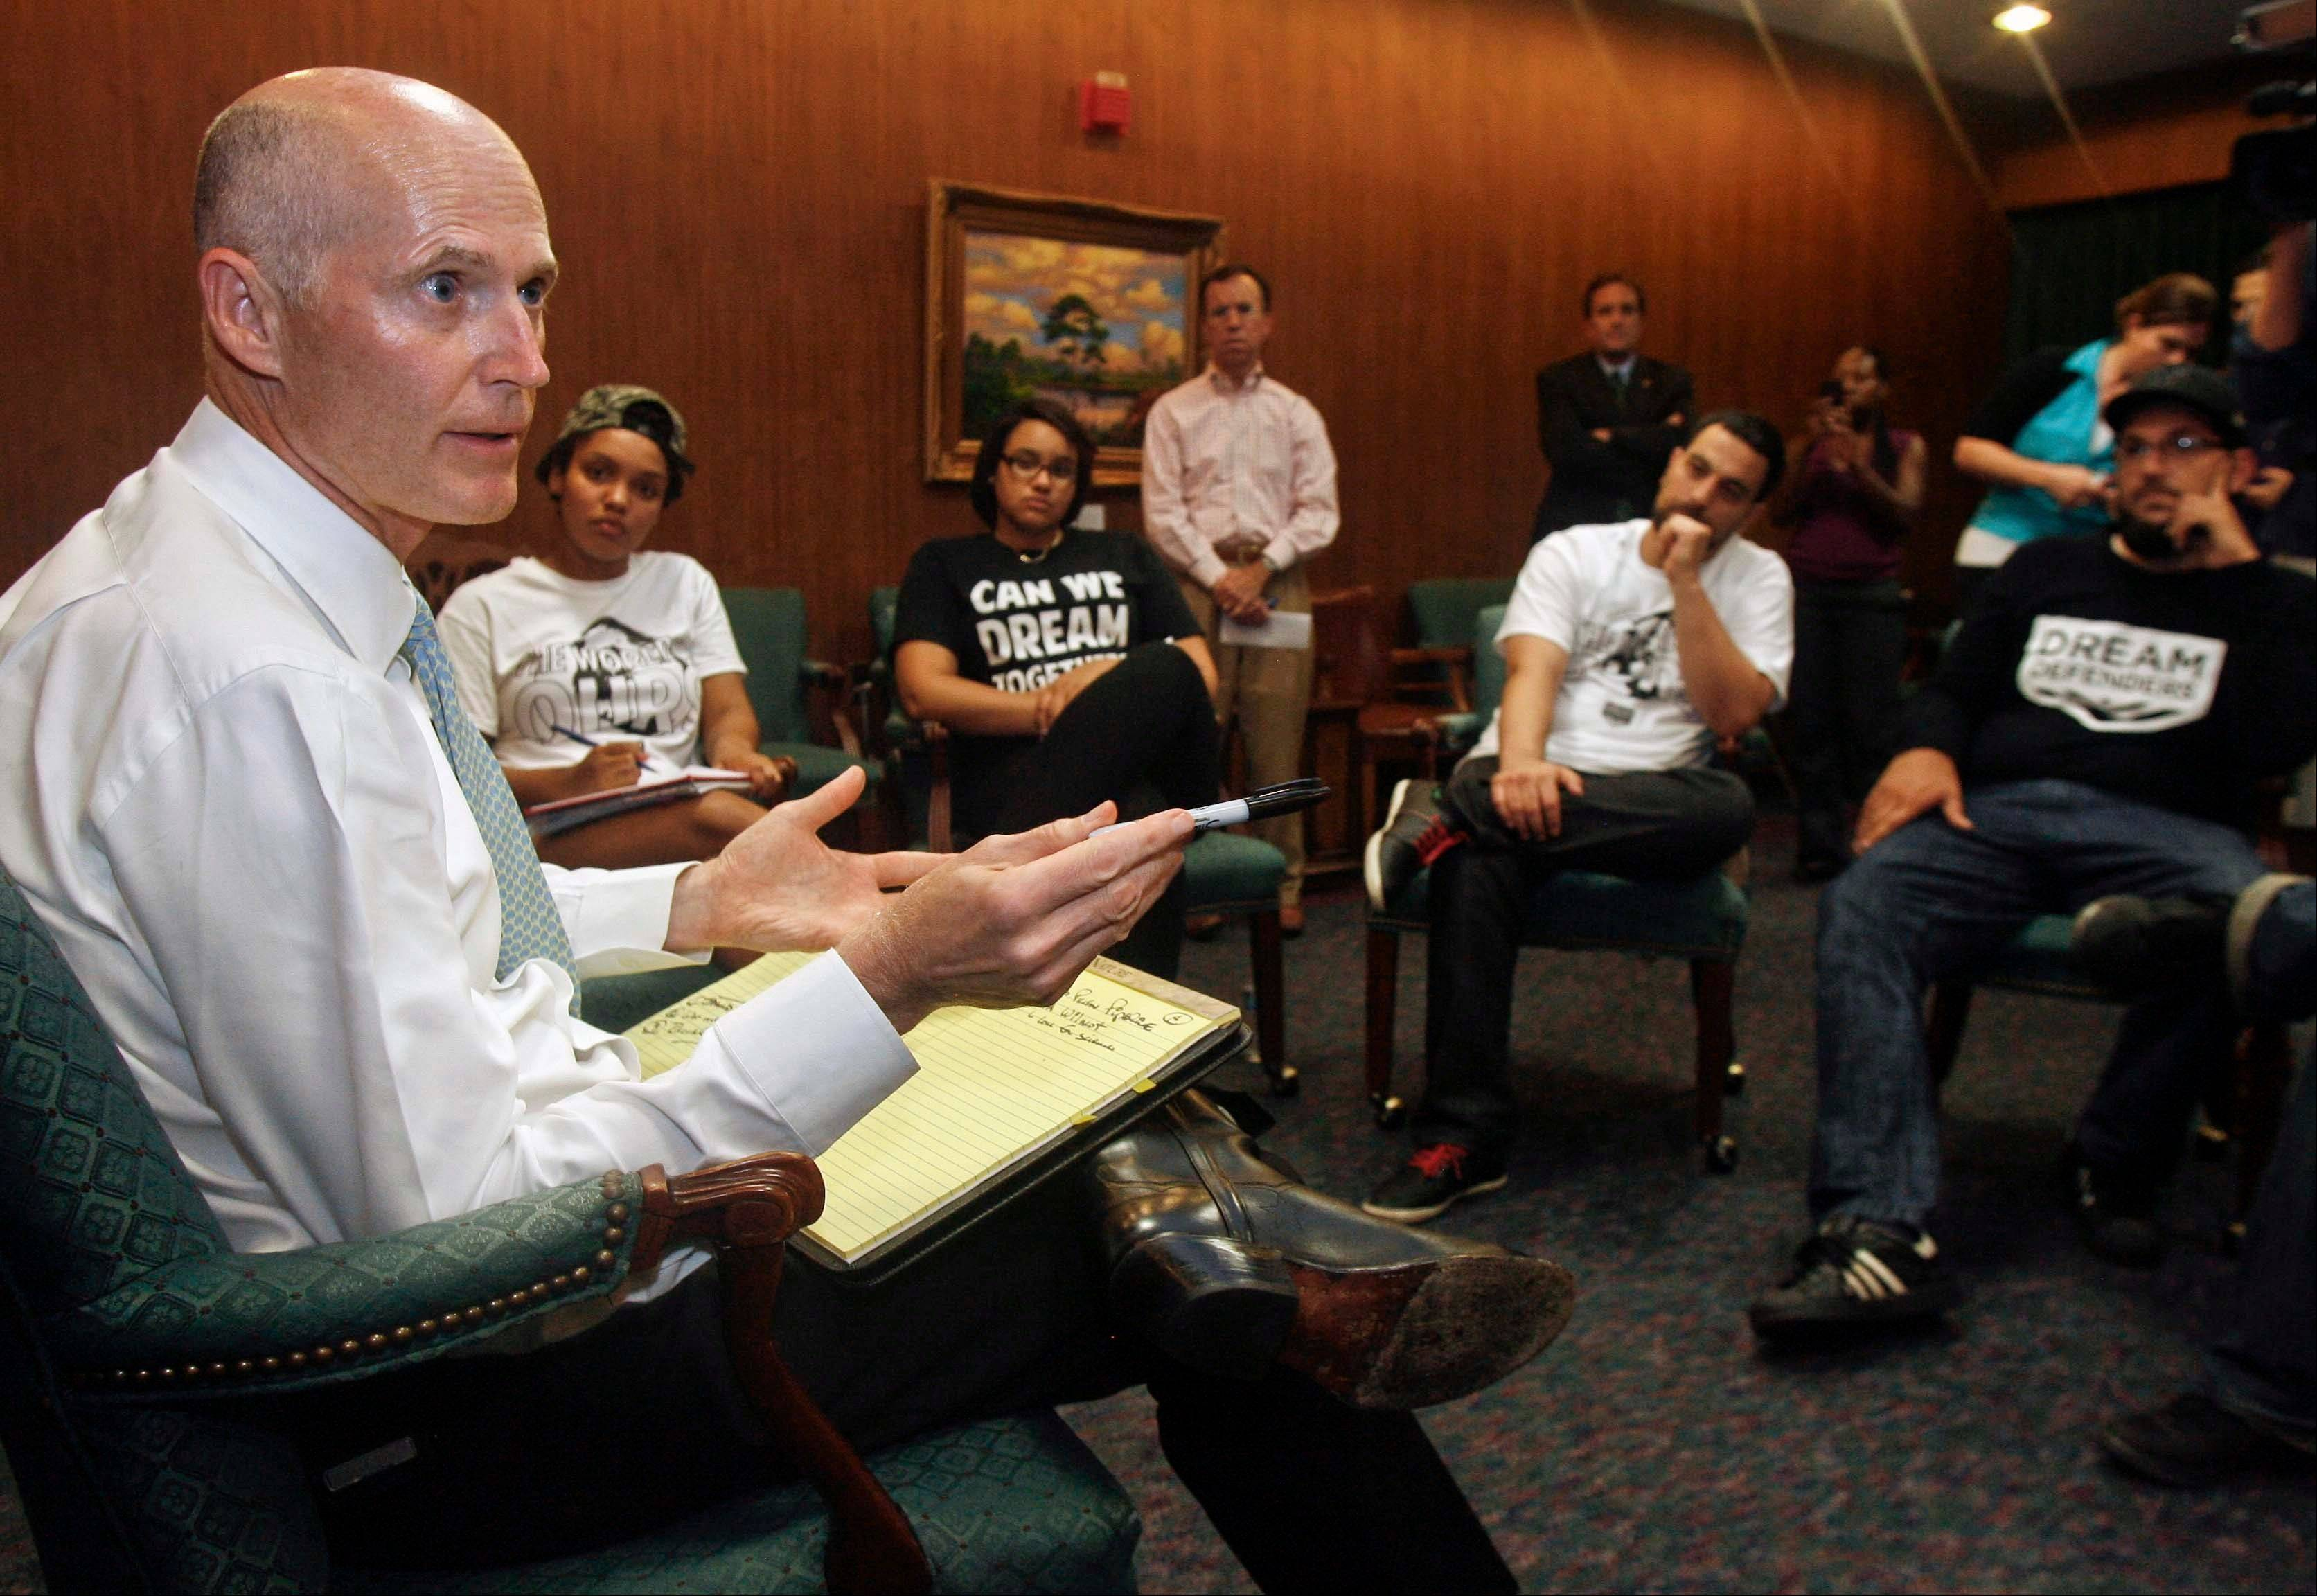 Florida Gov. Rick Scott told protesters he will not ask lawmakers to revamp the state�s self-defense laws.